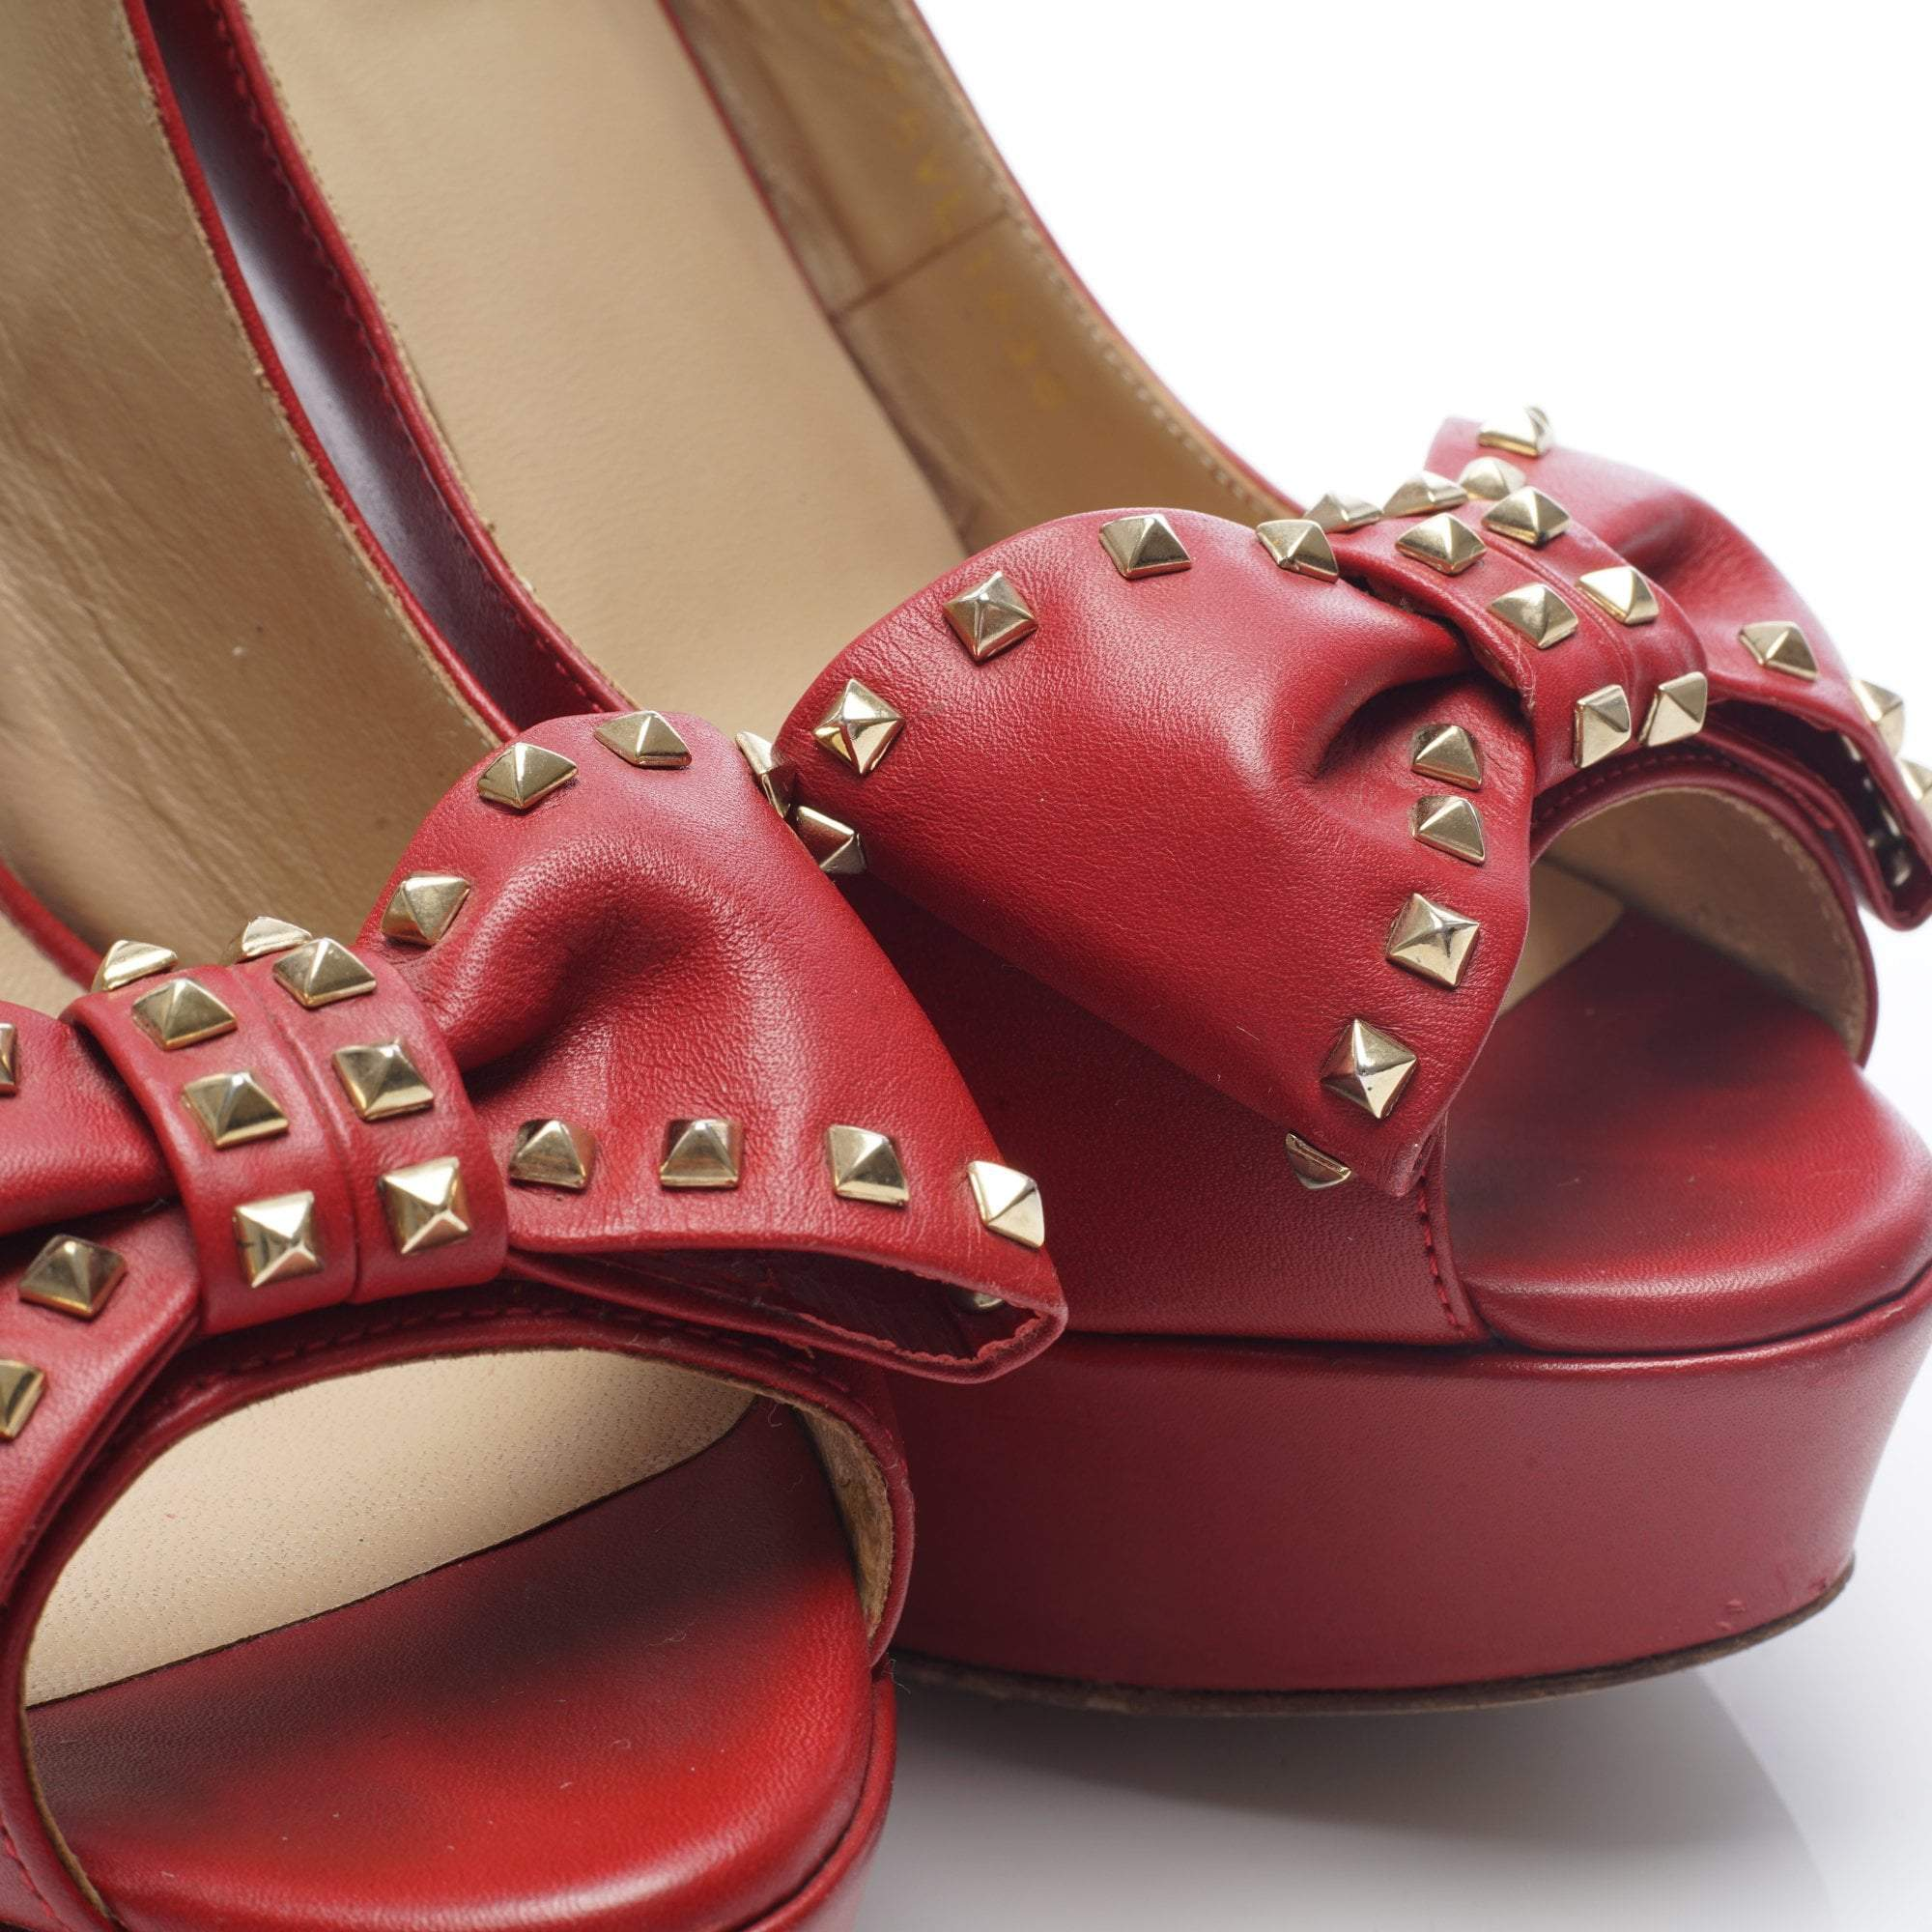 Valentino Red Platform Studded Bow Sling Back Pumps